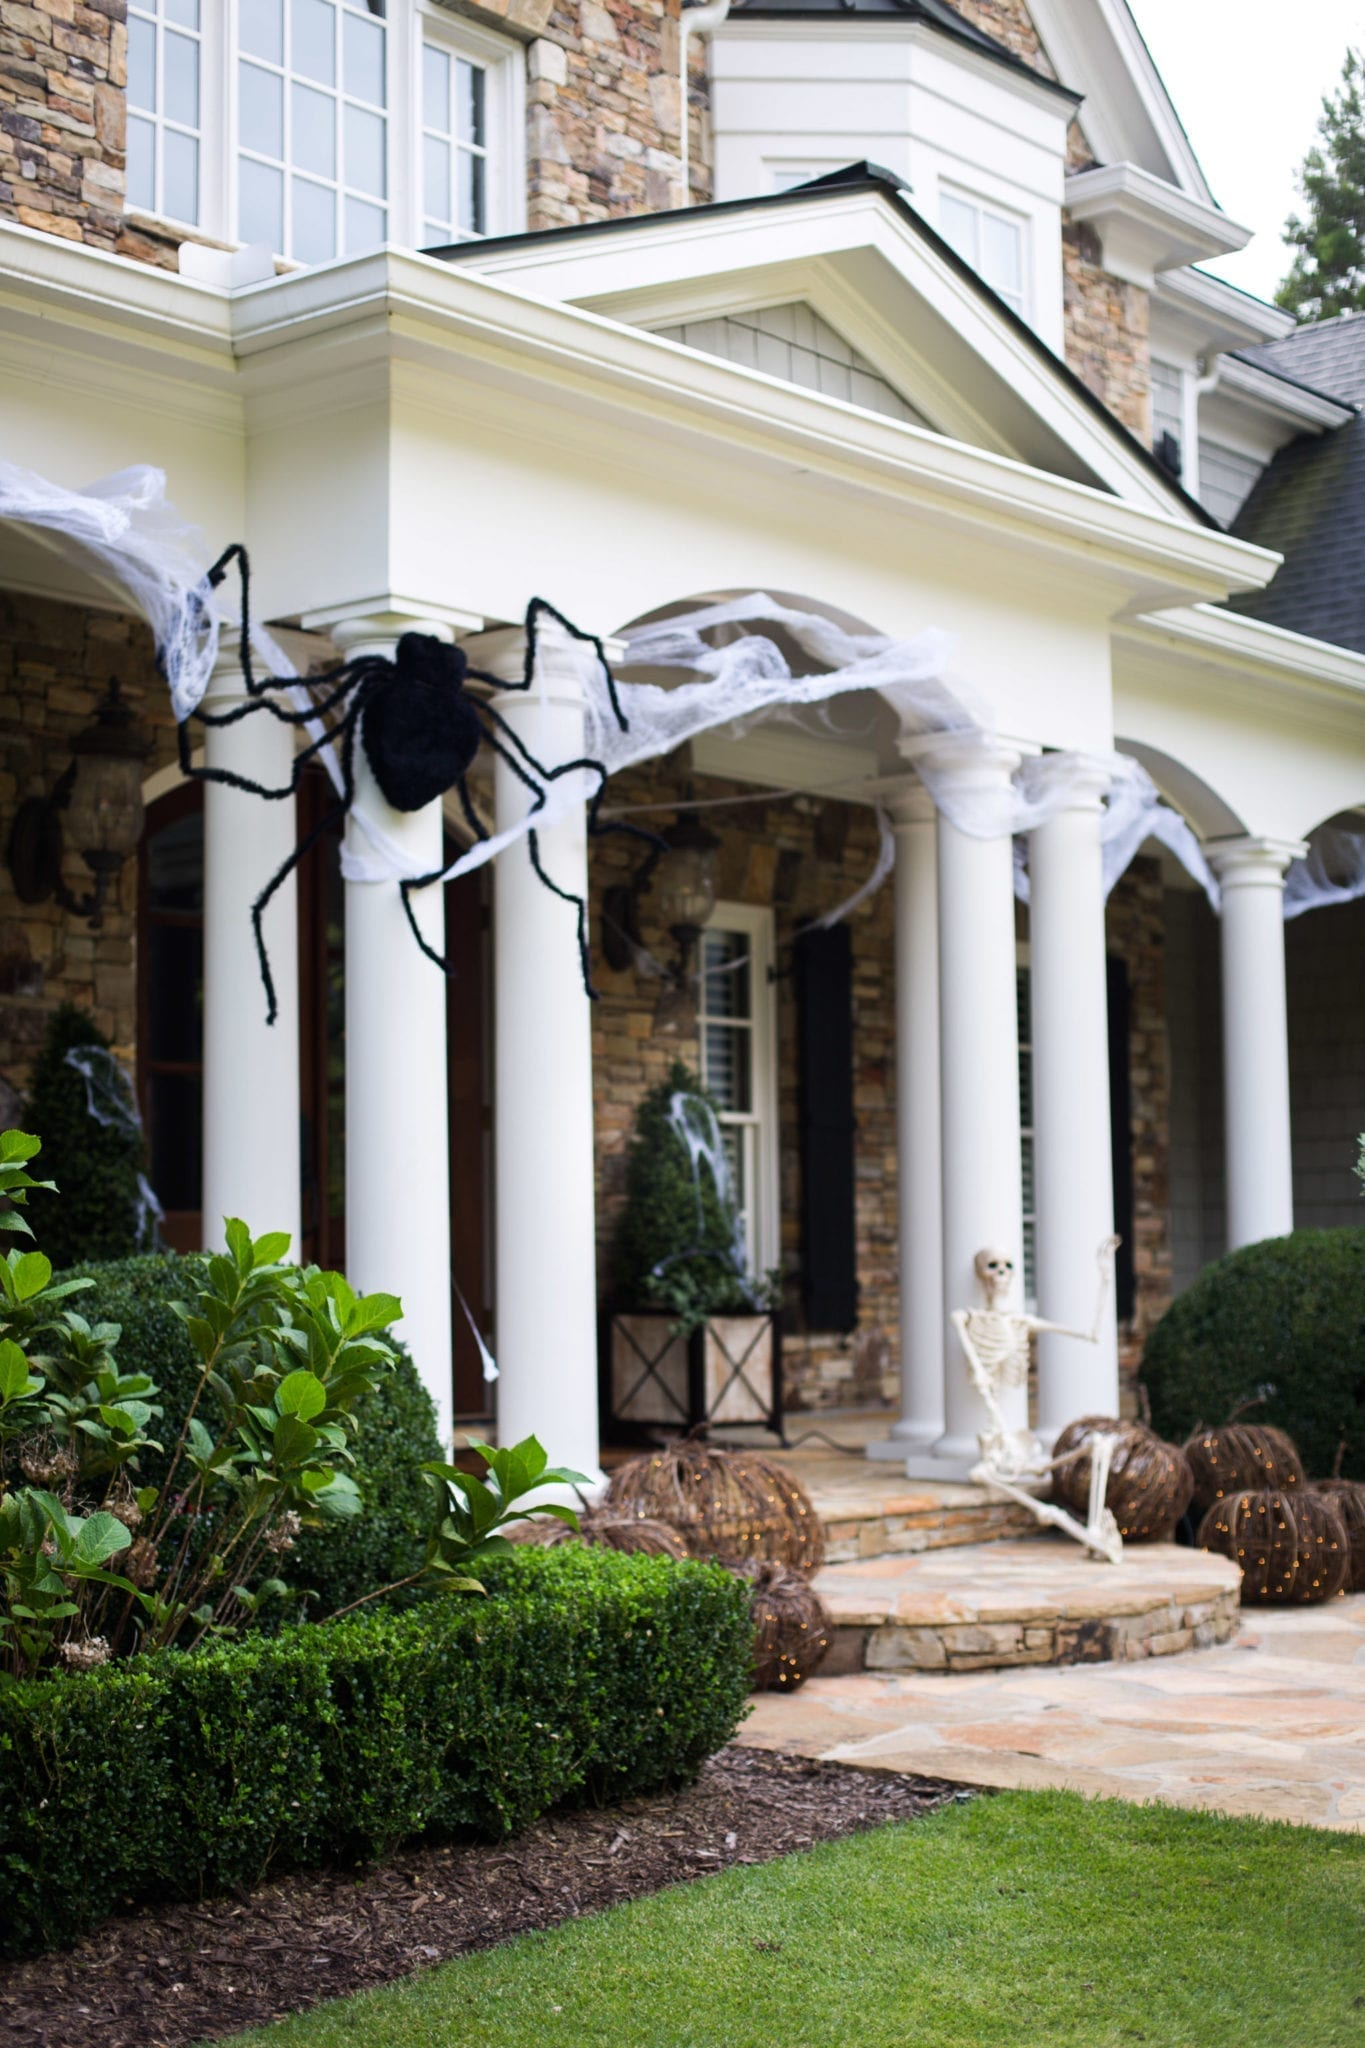 Giant outdoor spider Halloween decor.